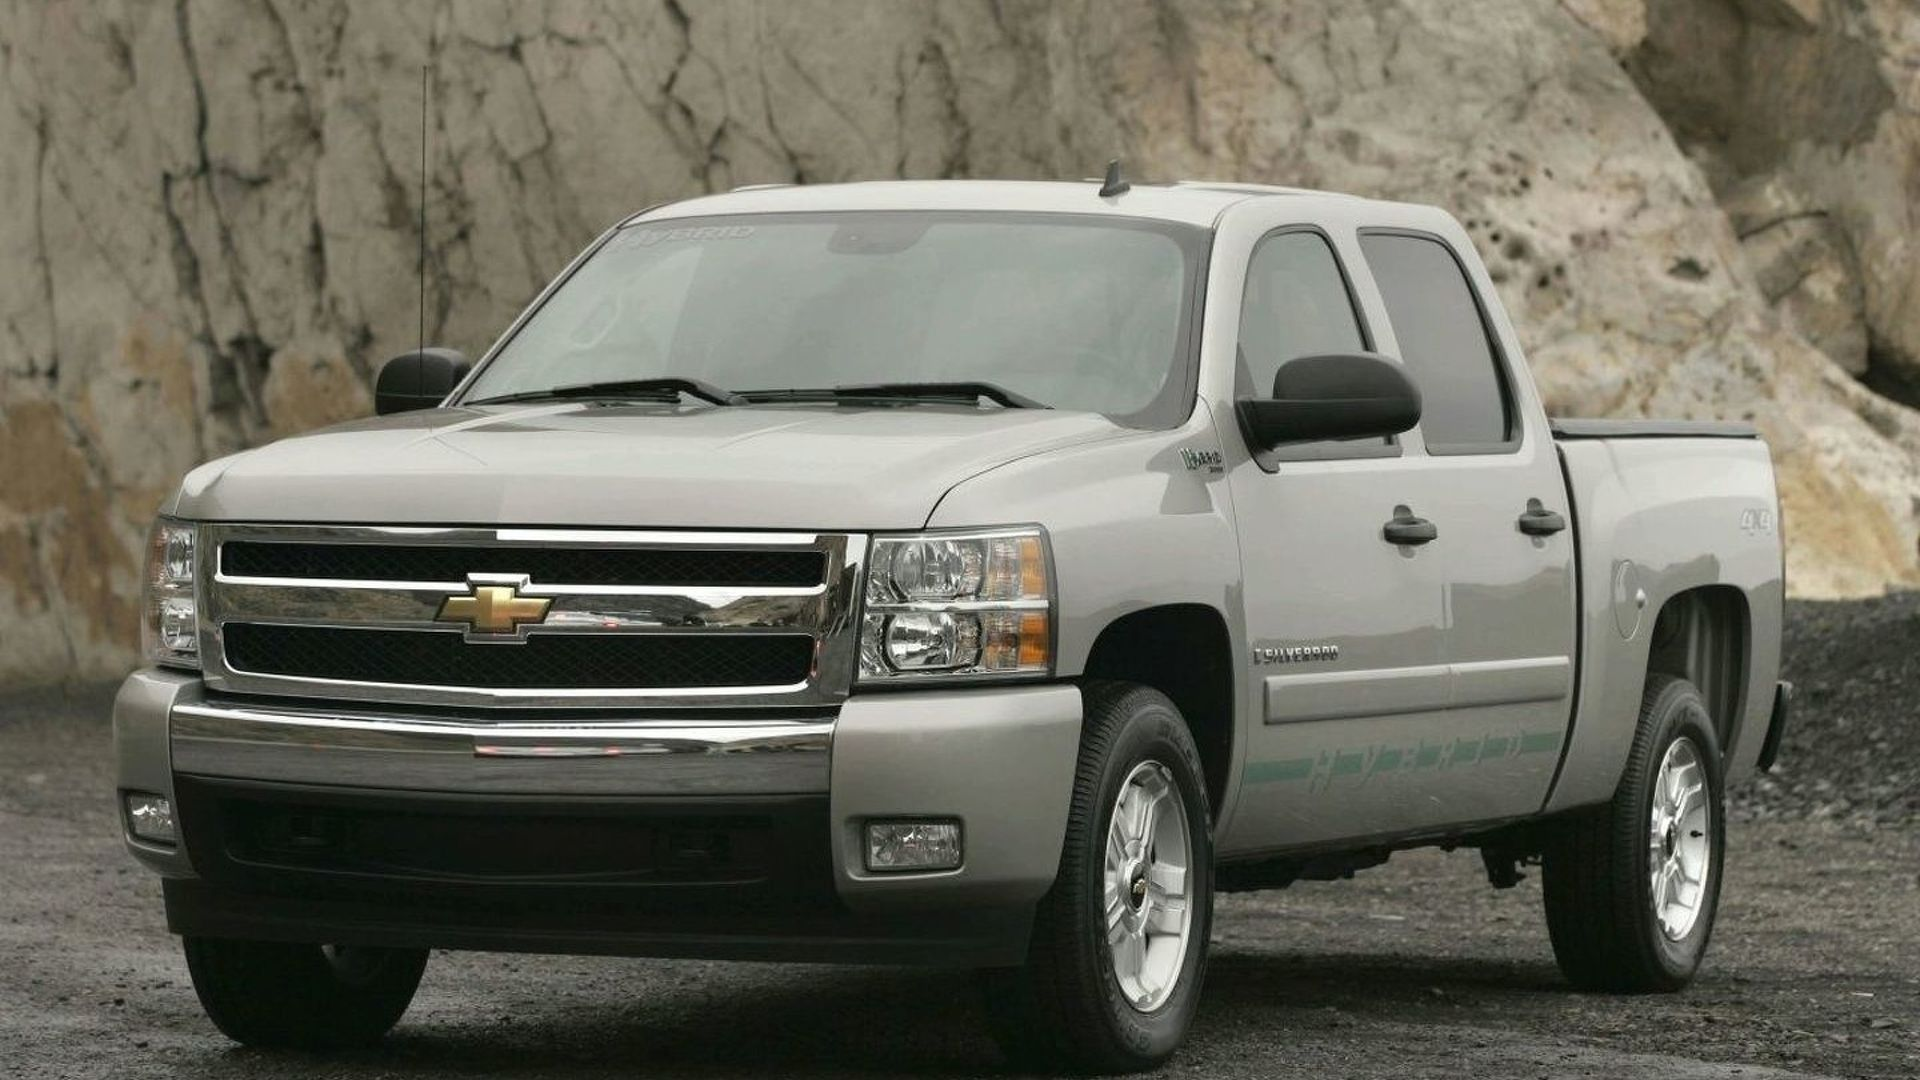 2009 chevrolet silverado 1500 detailed pricing and specifications html autos weblog. Black Bedroom Furniture Sets. Home Design Ideas